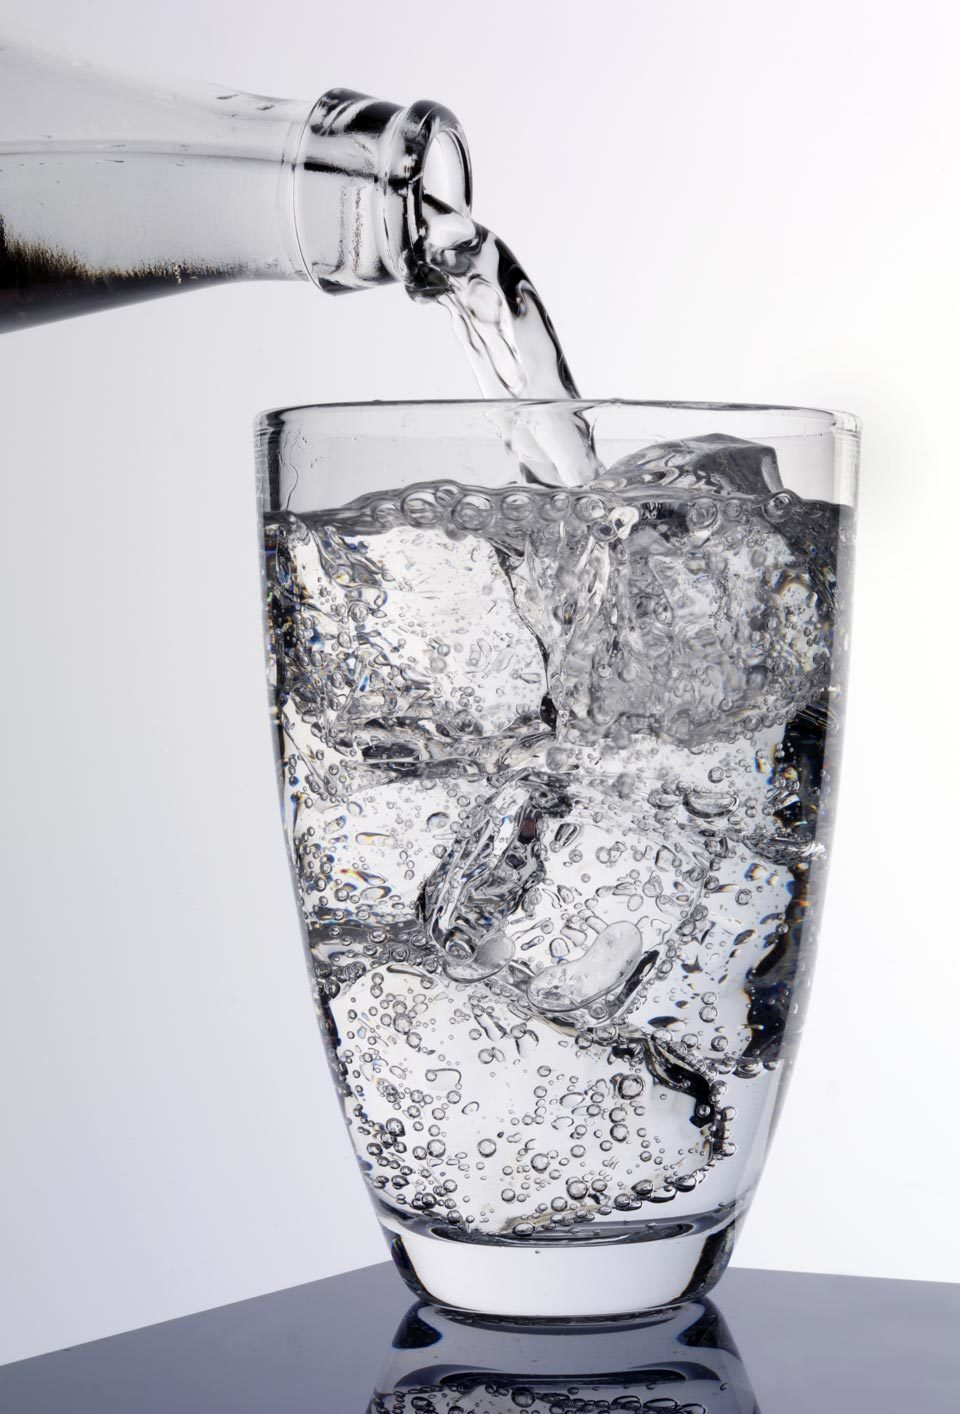 seltzer water poured in glass